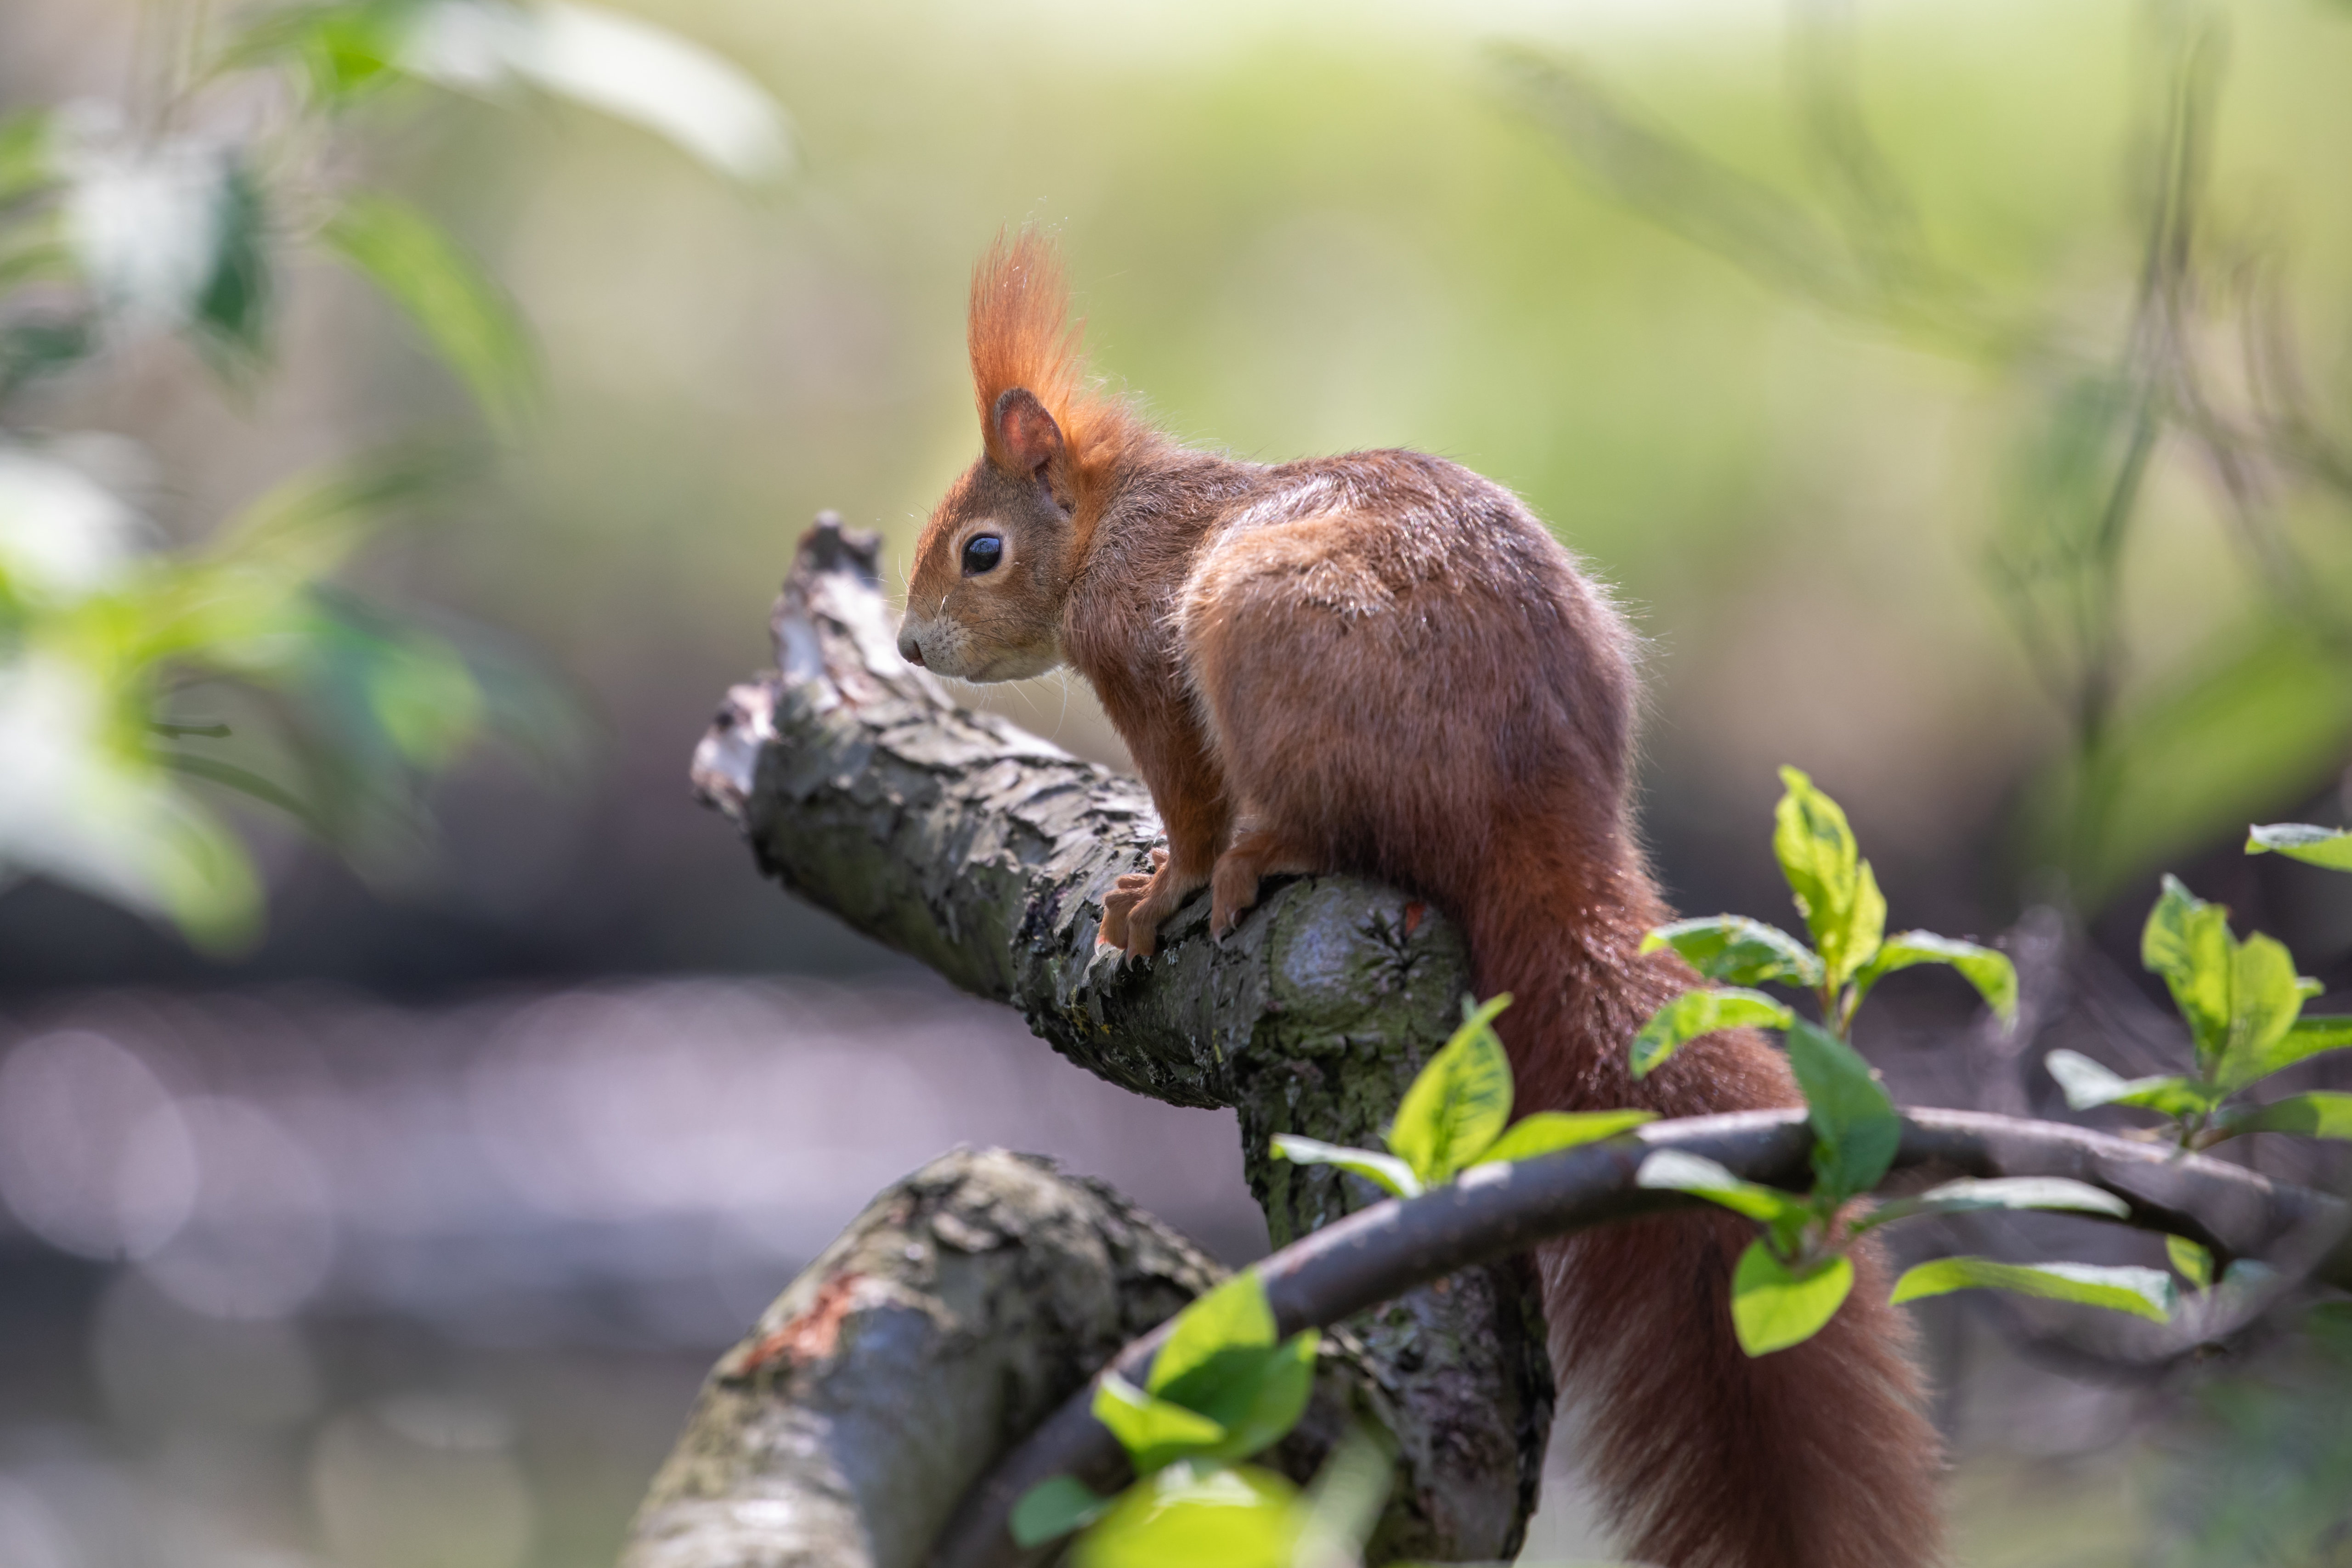 152622 download wallpaper Animals, Squirrel, Animal, Rodent, Wood, Tree screensavers and pictures for free